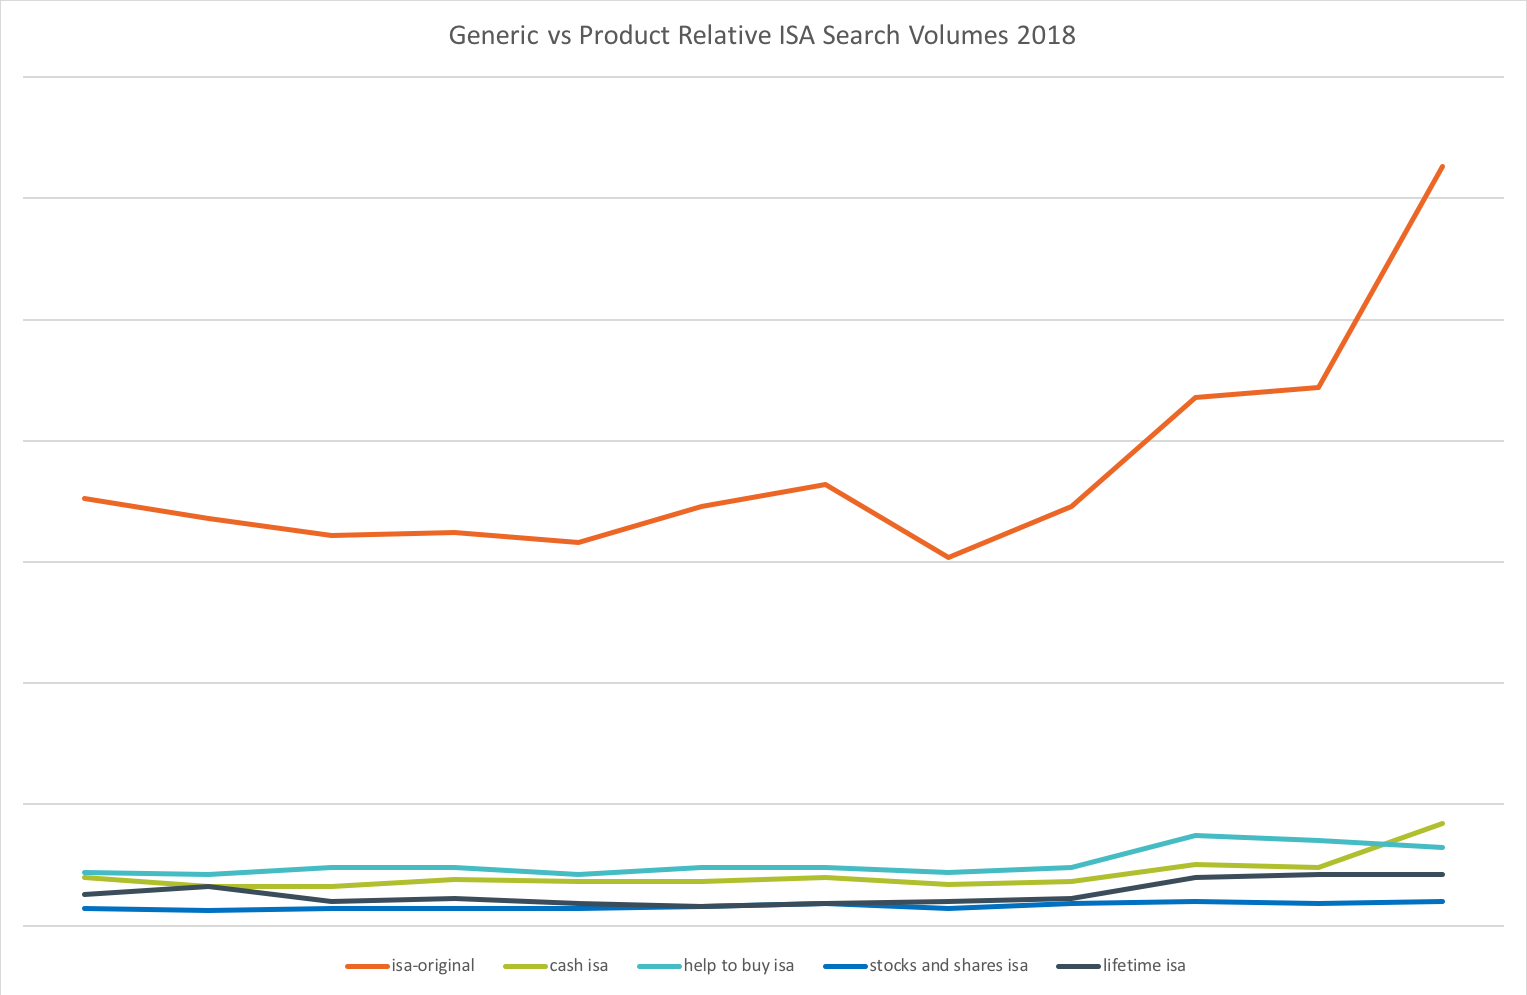 Generic vs Product Relative ISA Search Volumes 2018